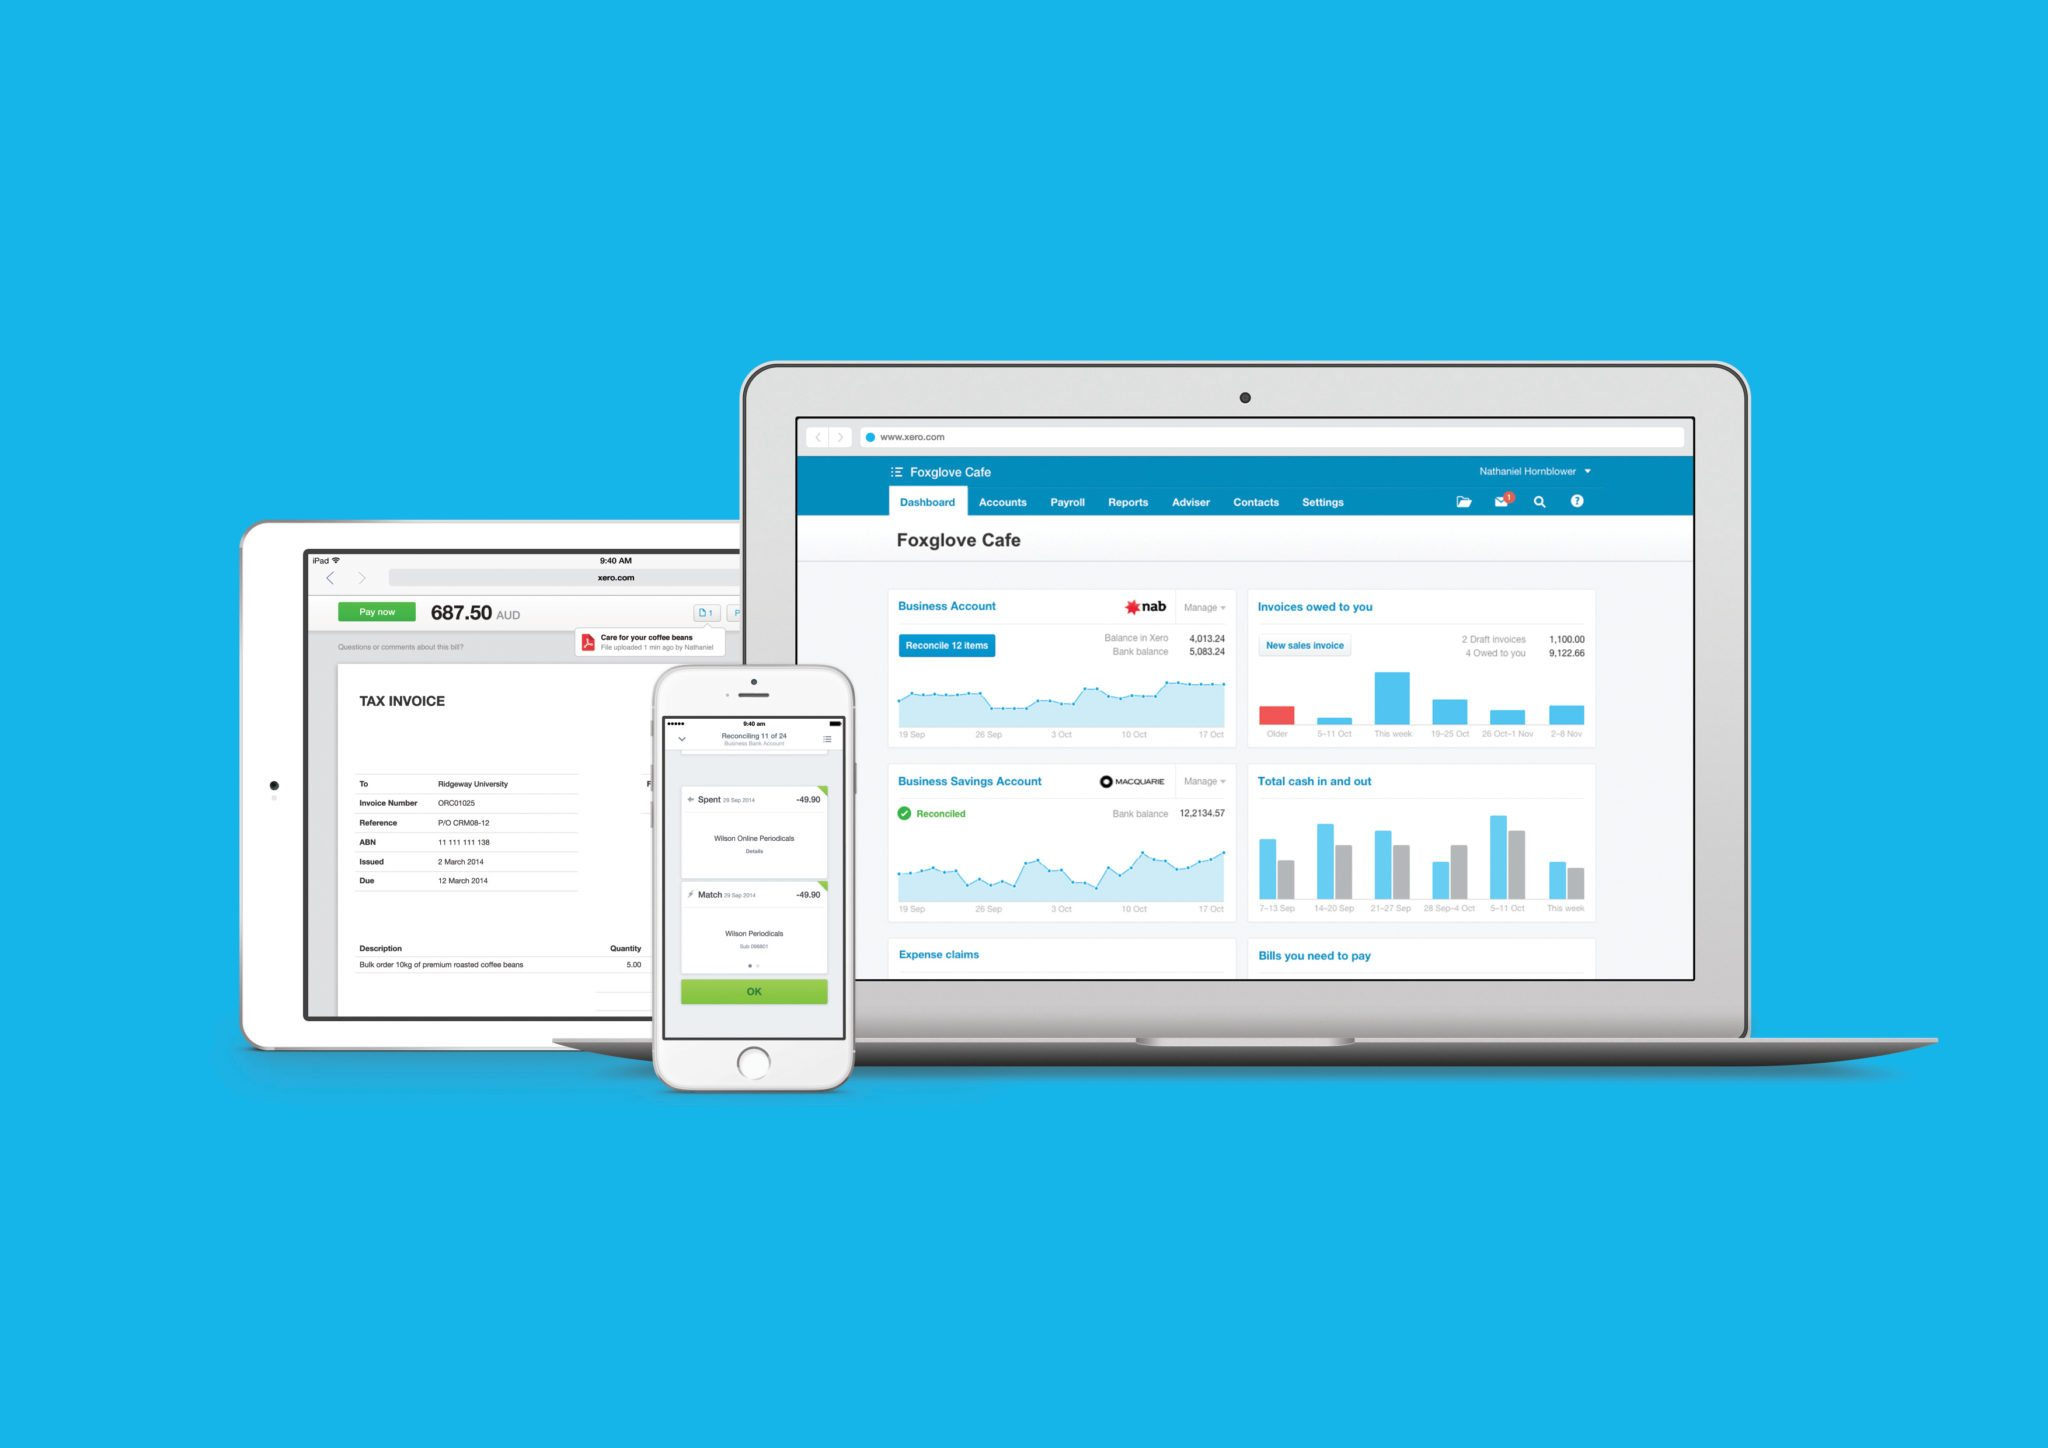 Image of Xero products